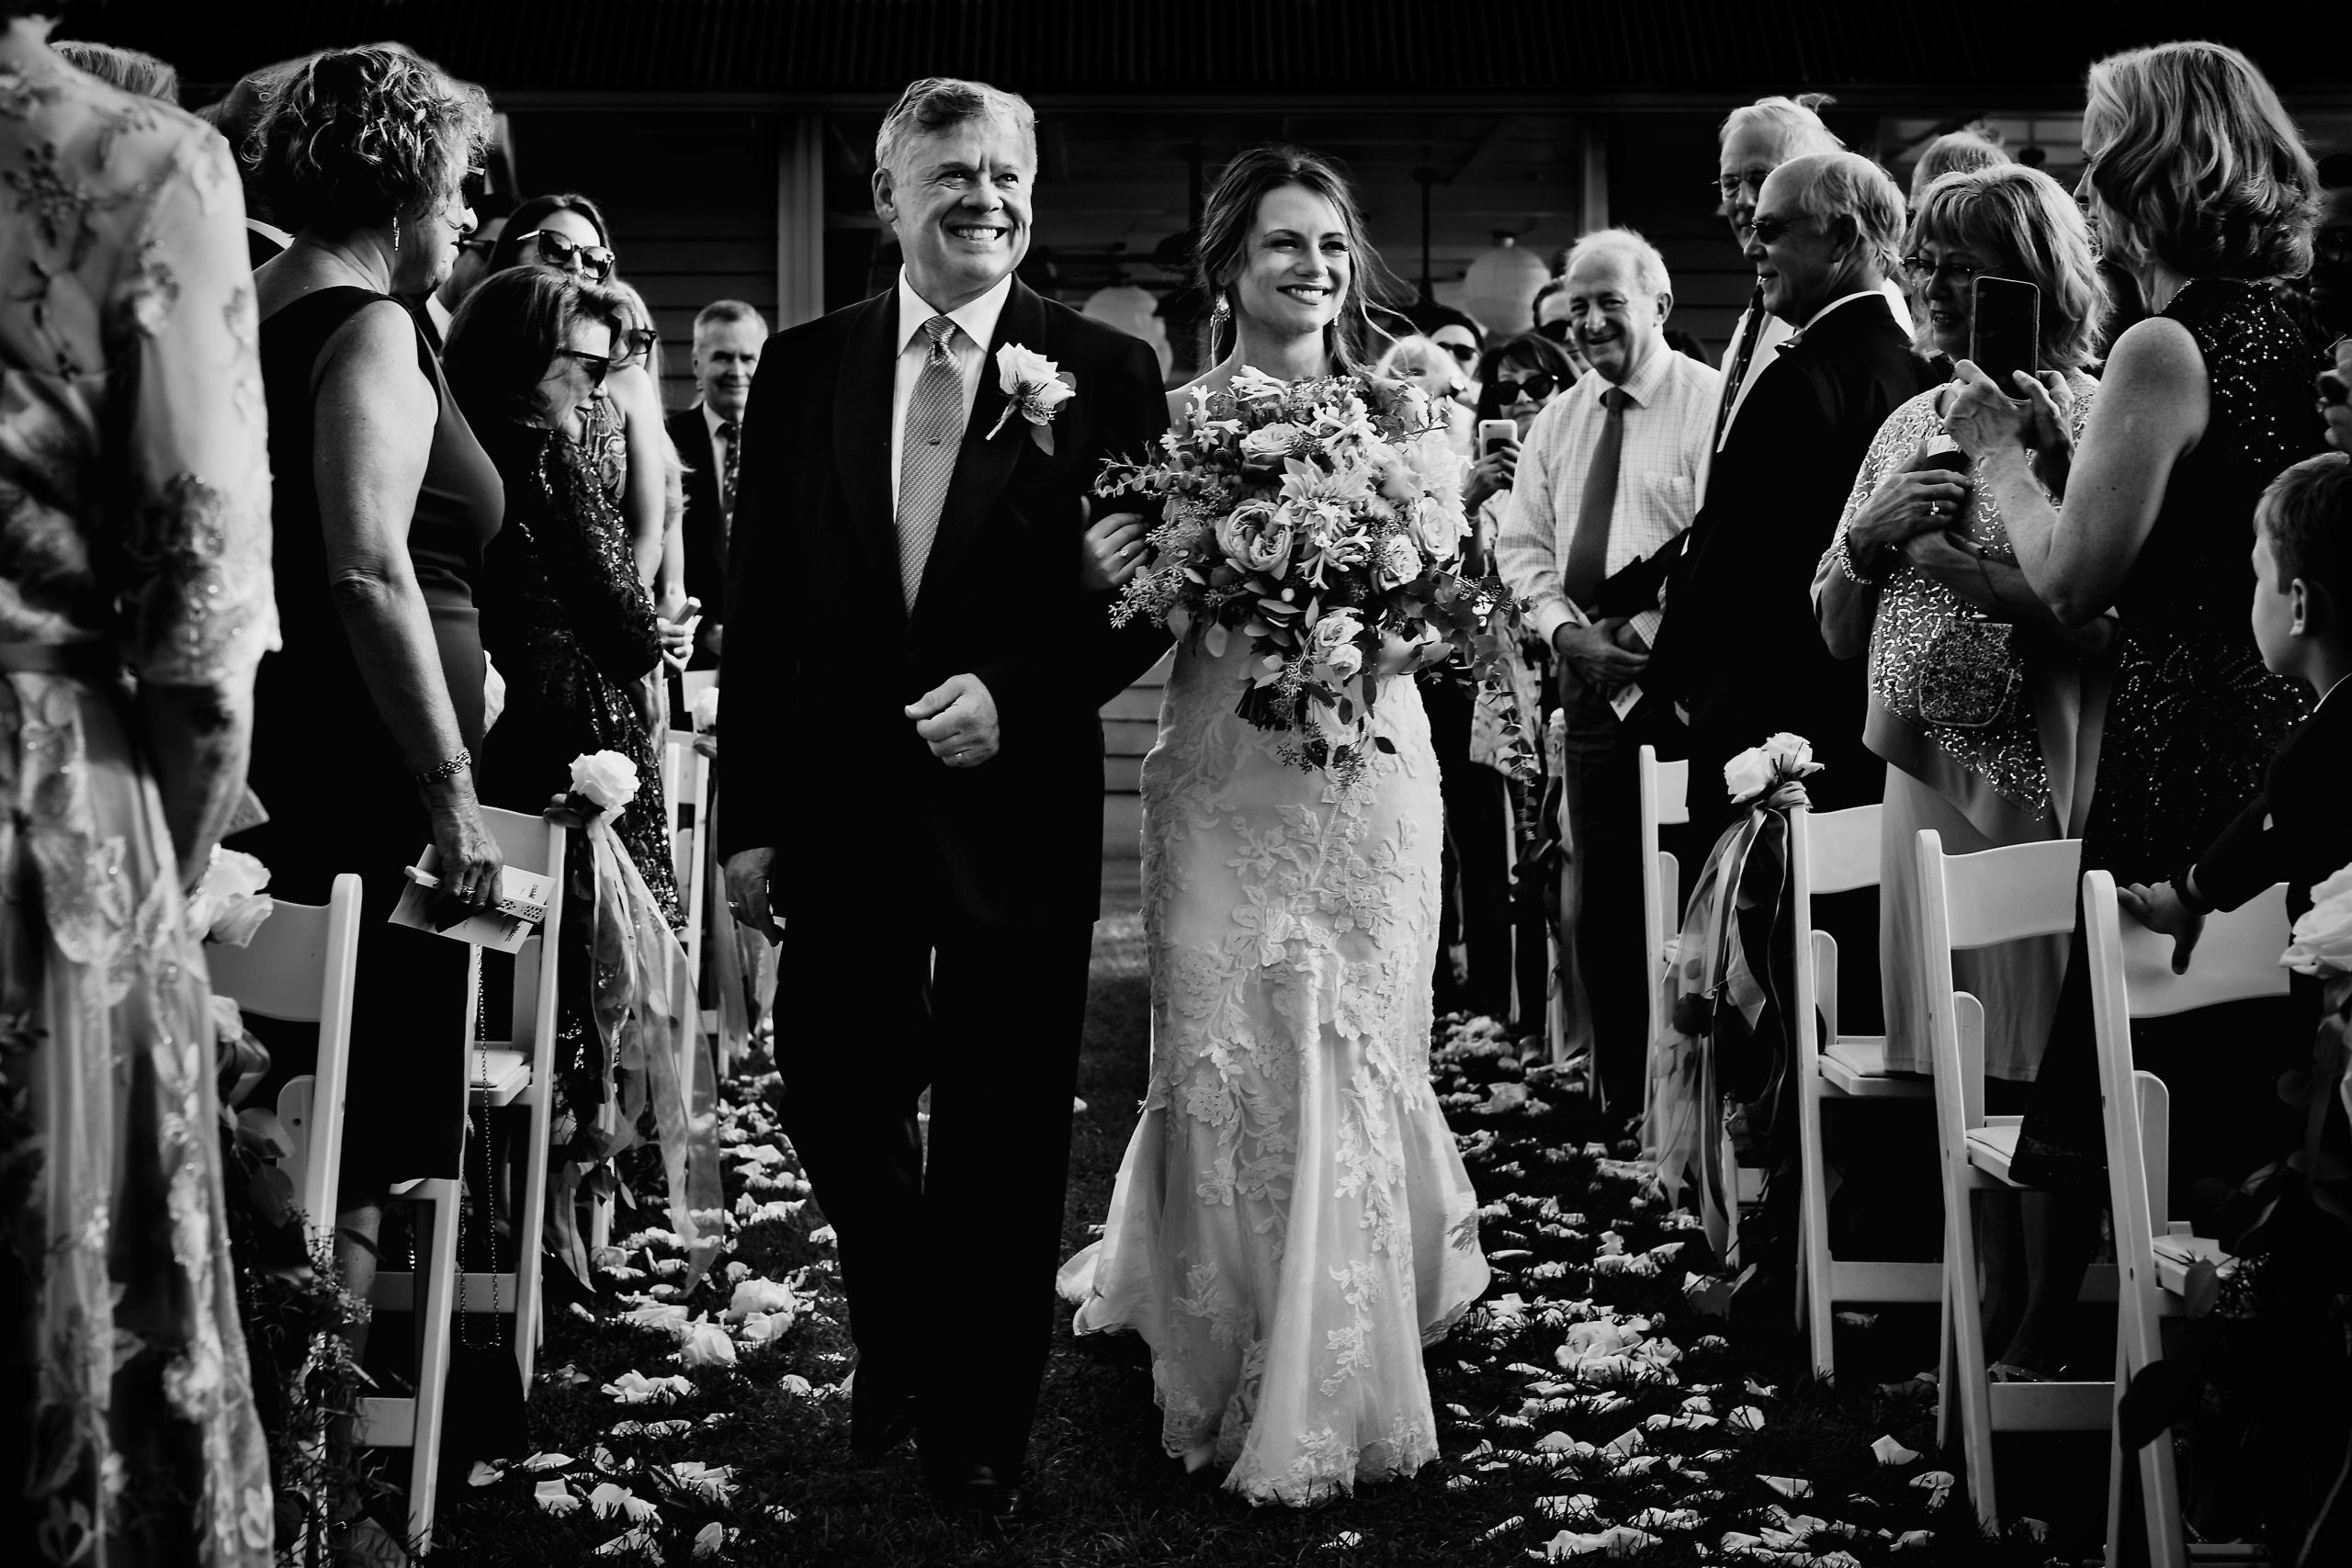 Weddings guests stand as the bride's father walks her down the aisle